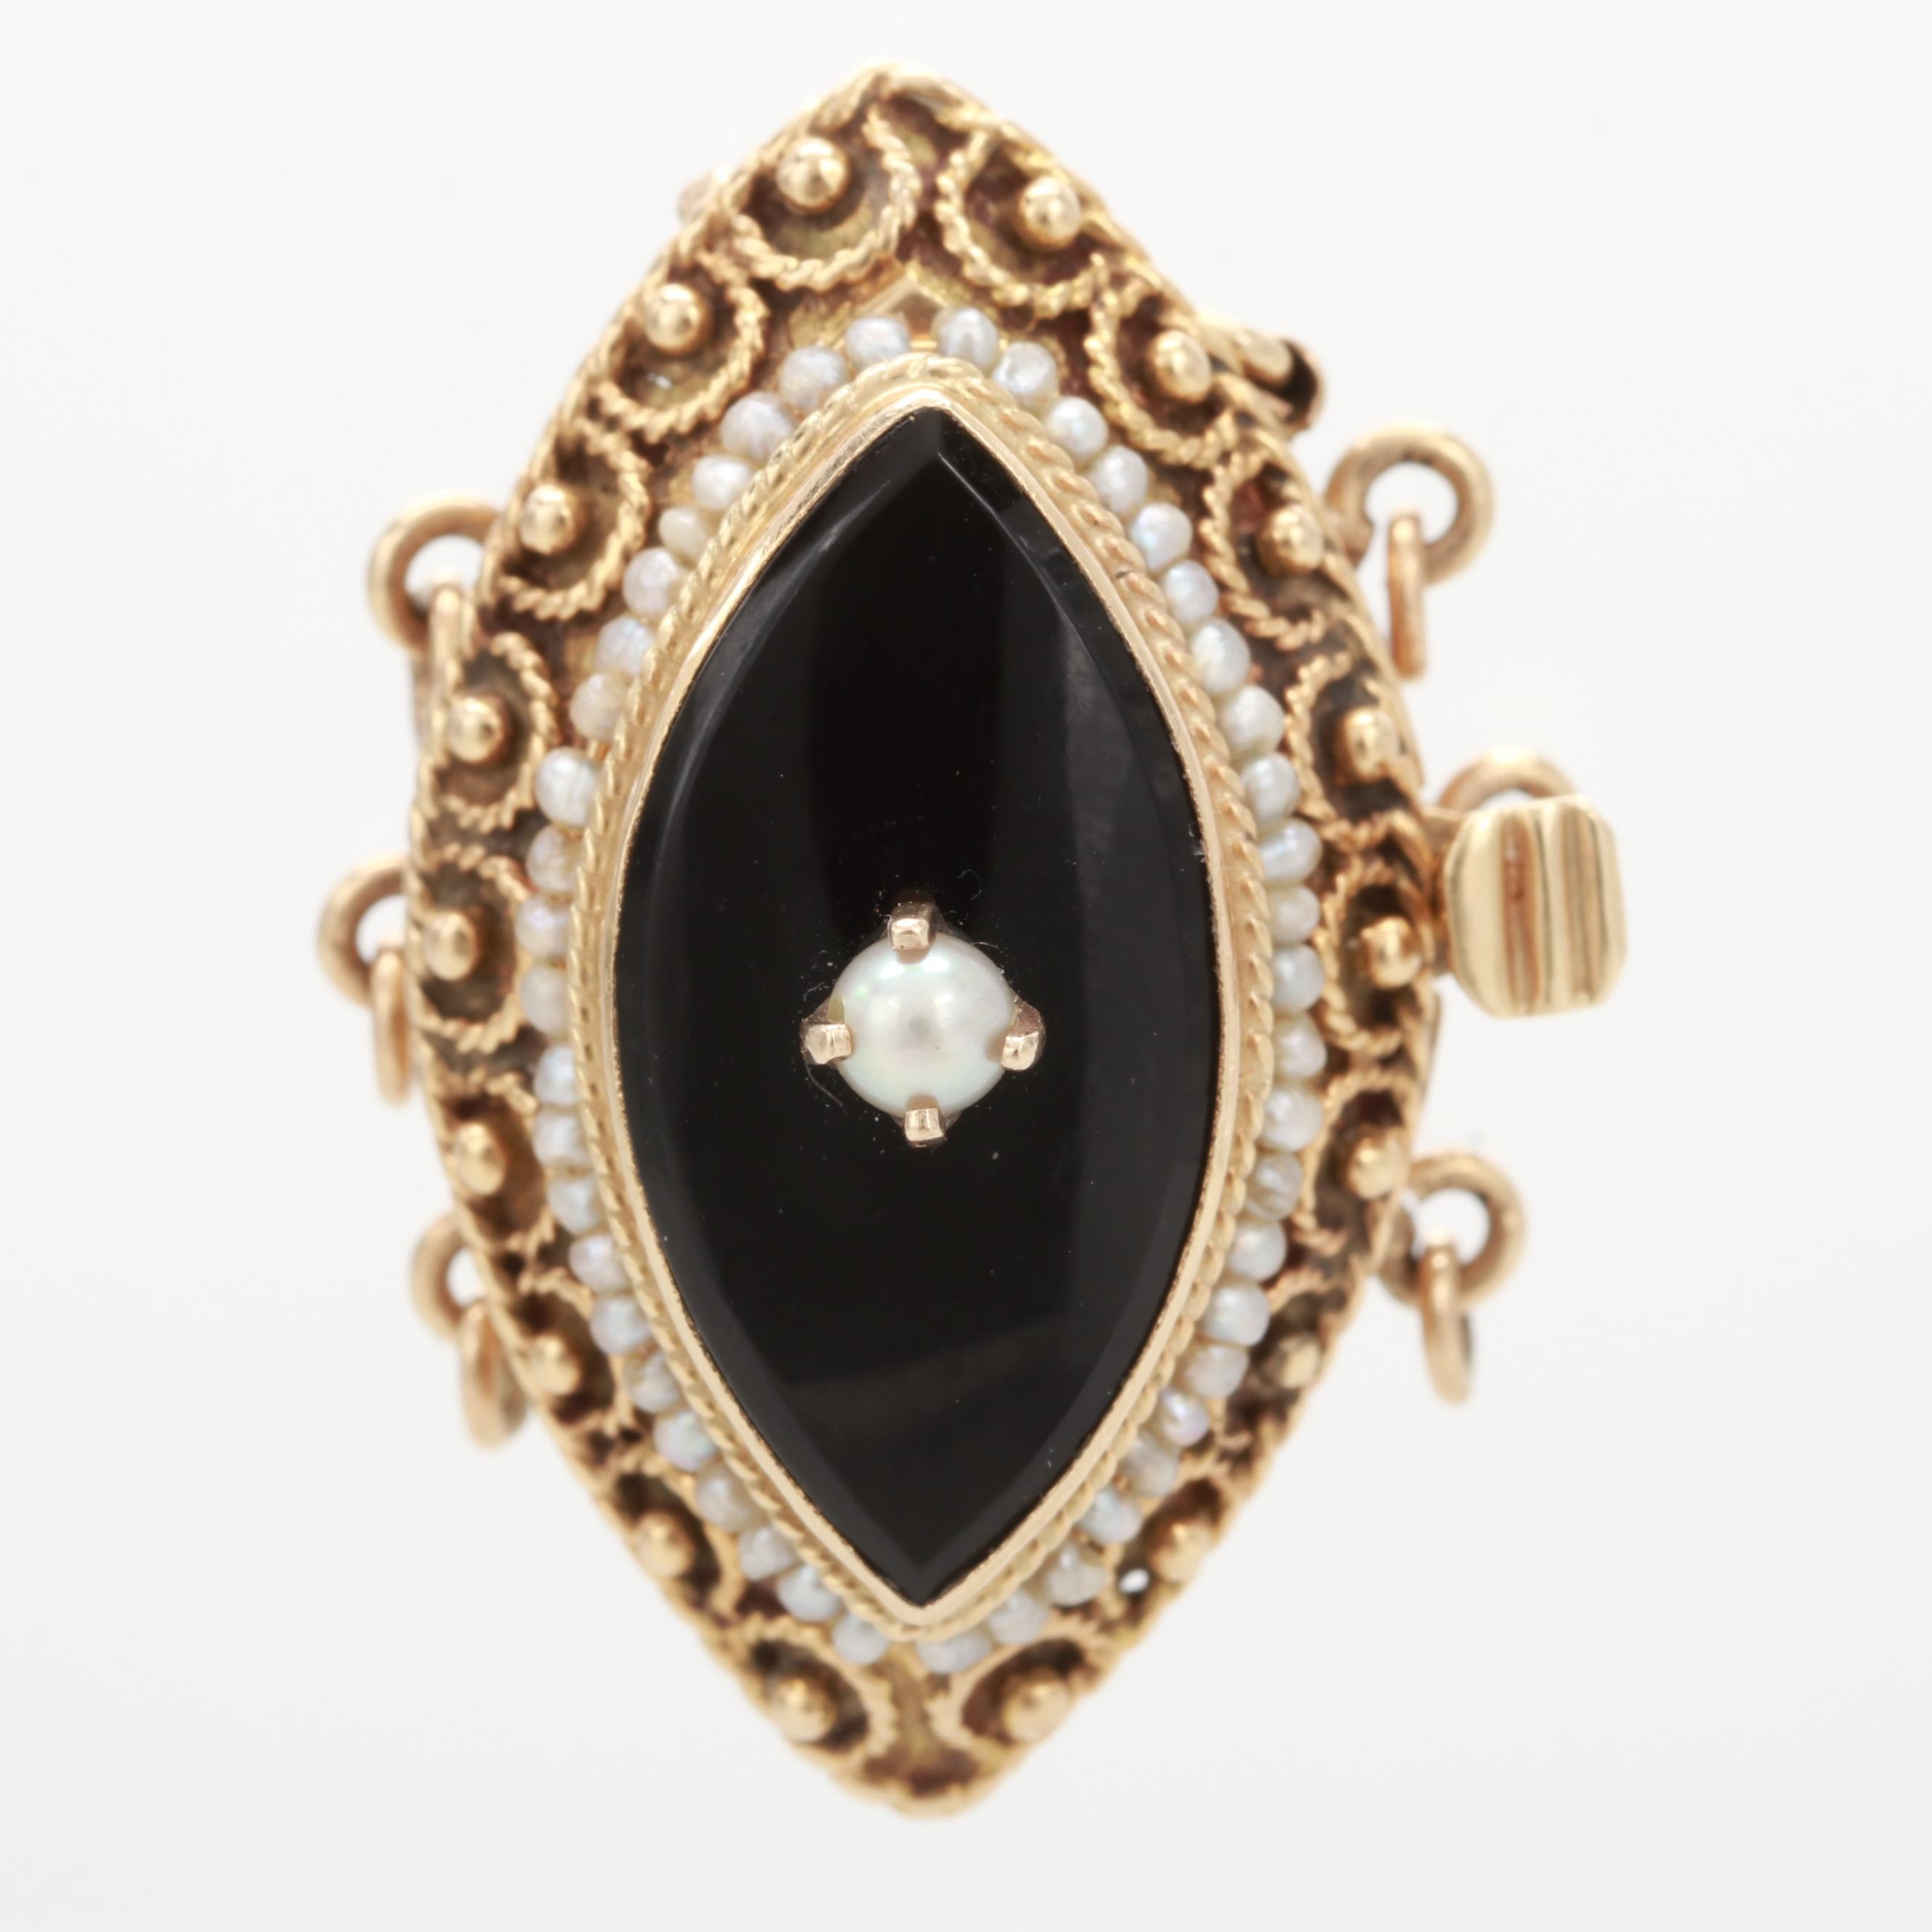 14K Yellow Gold Black Onyx and Cultured Seed Pearl Clasp